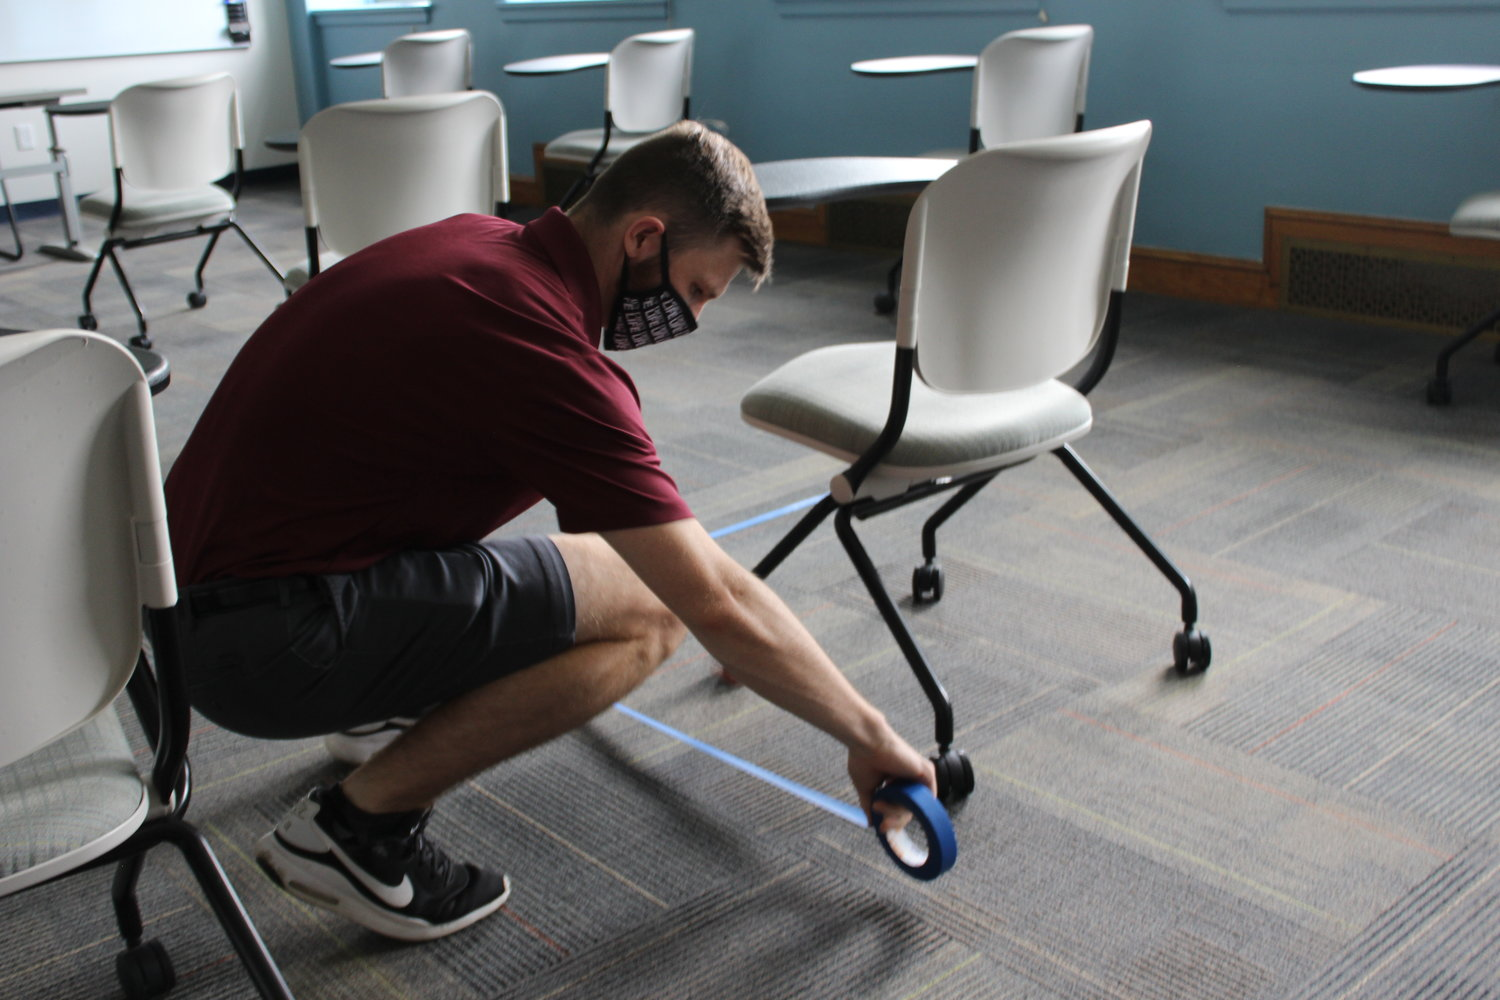 Jack Ryan, a student at Molloy, helped tape lines in a classroom to indicate where desks should be placed — each one six feet apart.